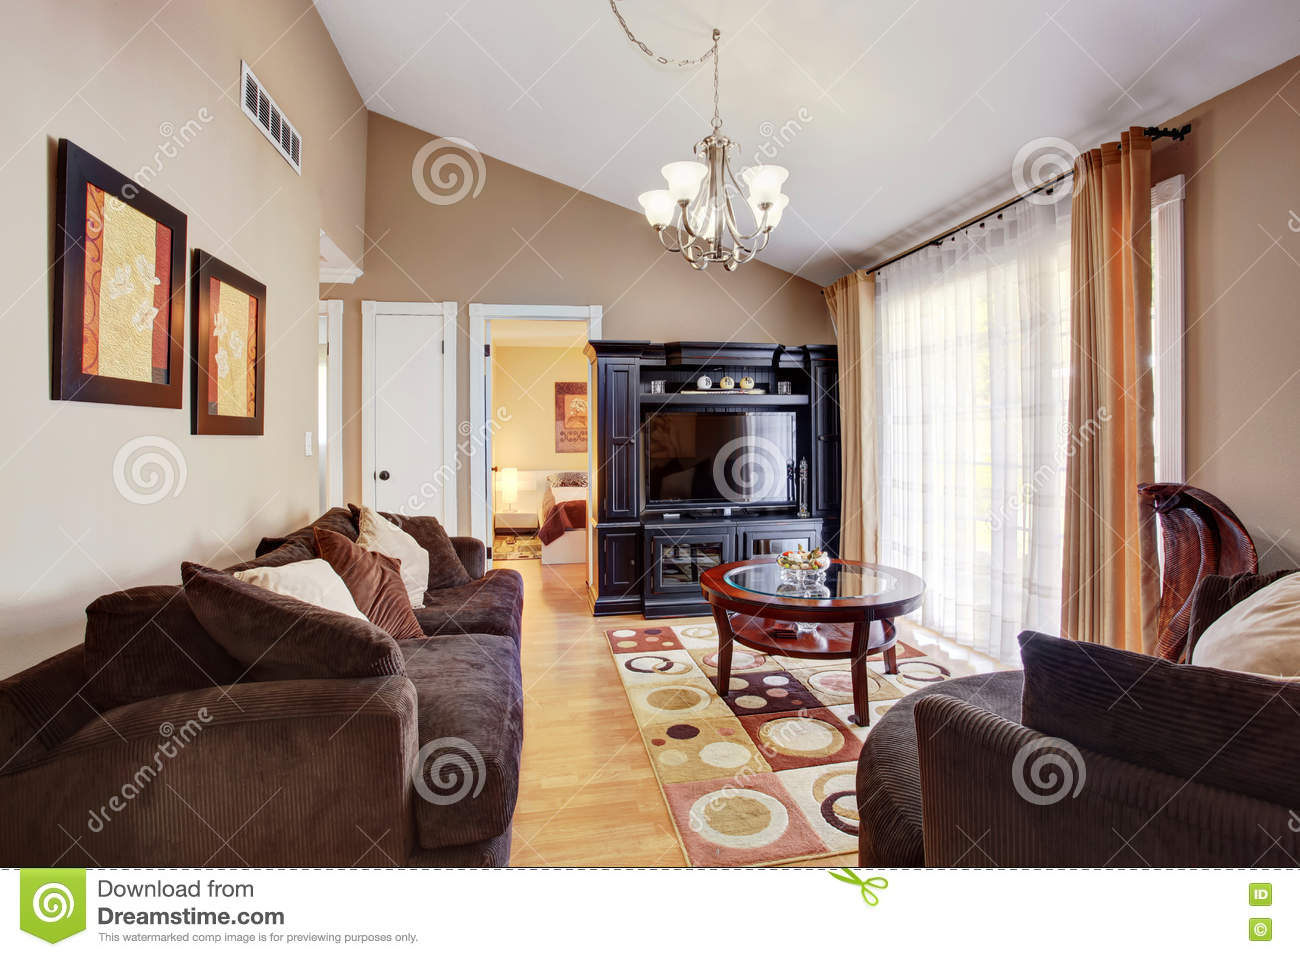 bright colored living room rugs rooms furniture arrangements with brown sofa and colorful rug stock image